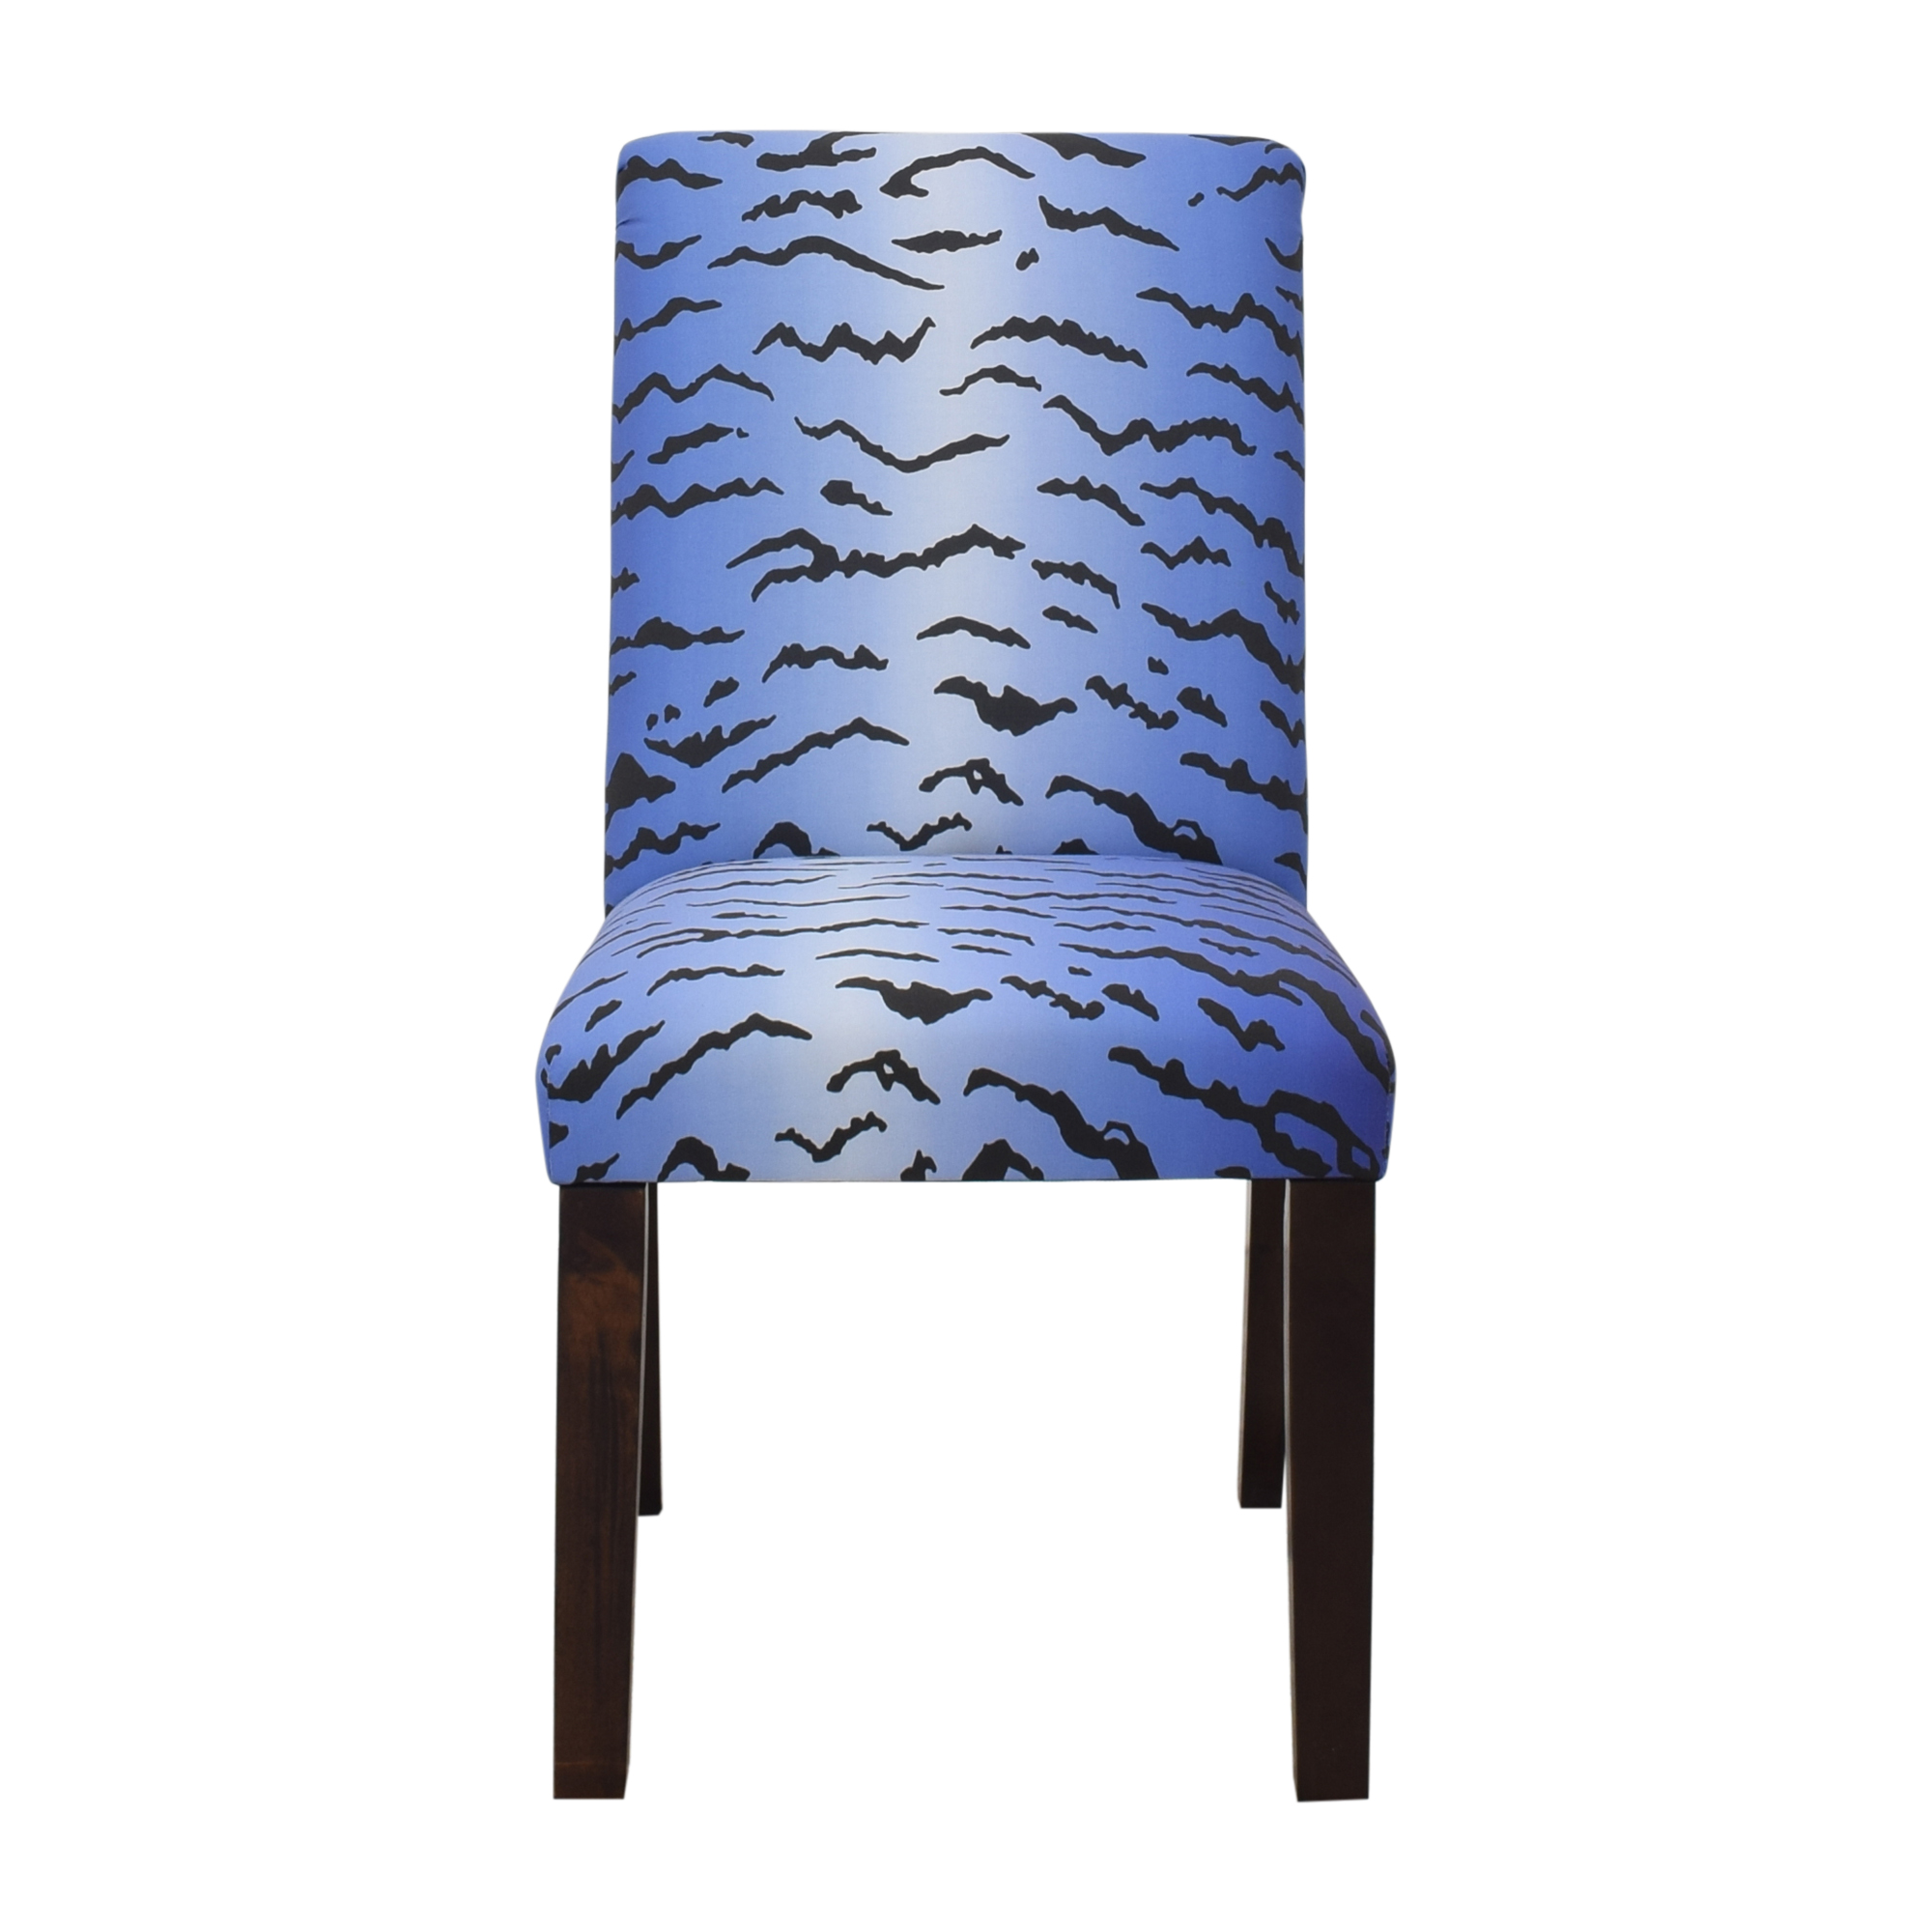 shop The Inside The Inside Classic Dining Chair online